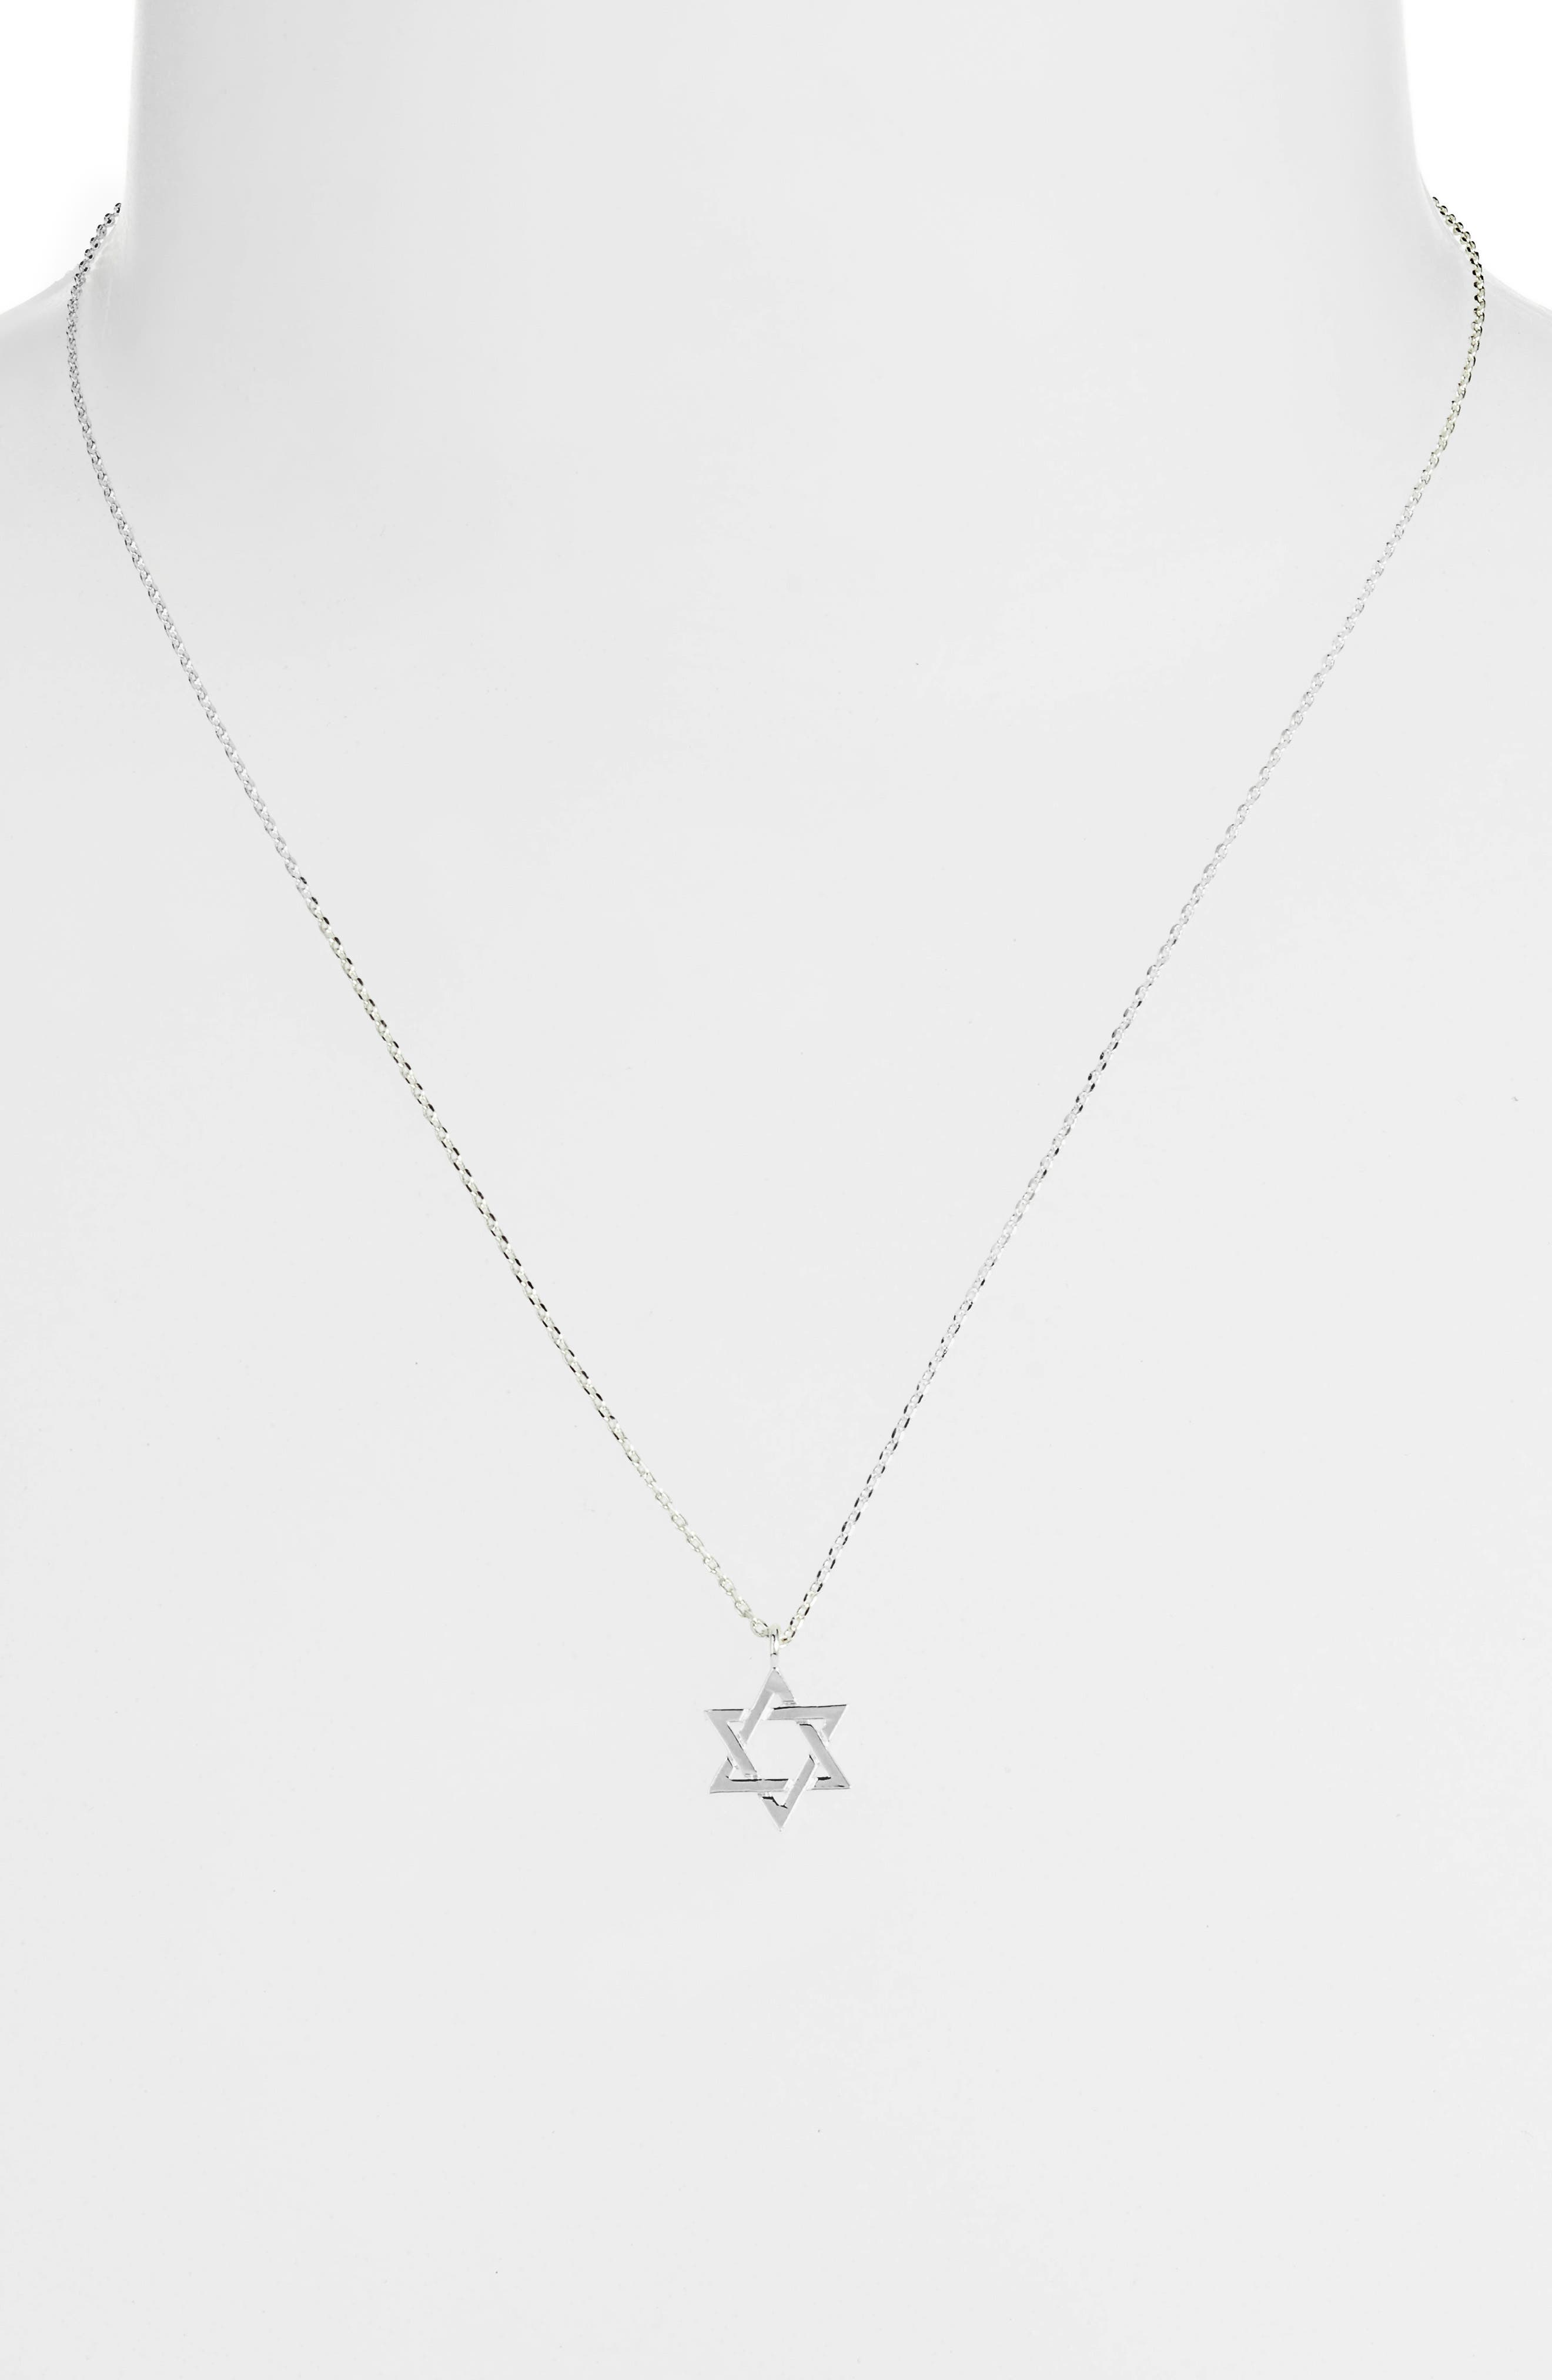 Star of David Necklace,                             Alternate thumbnail 2, color,                             SILVER